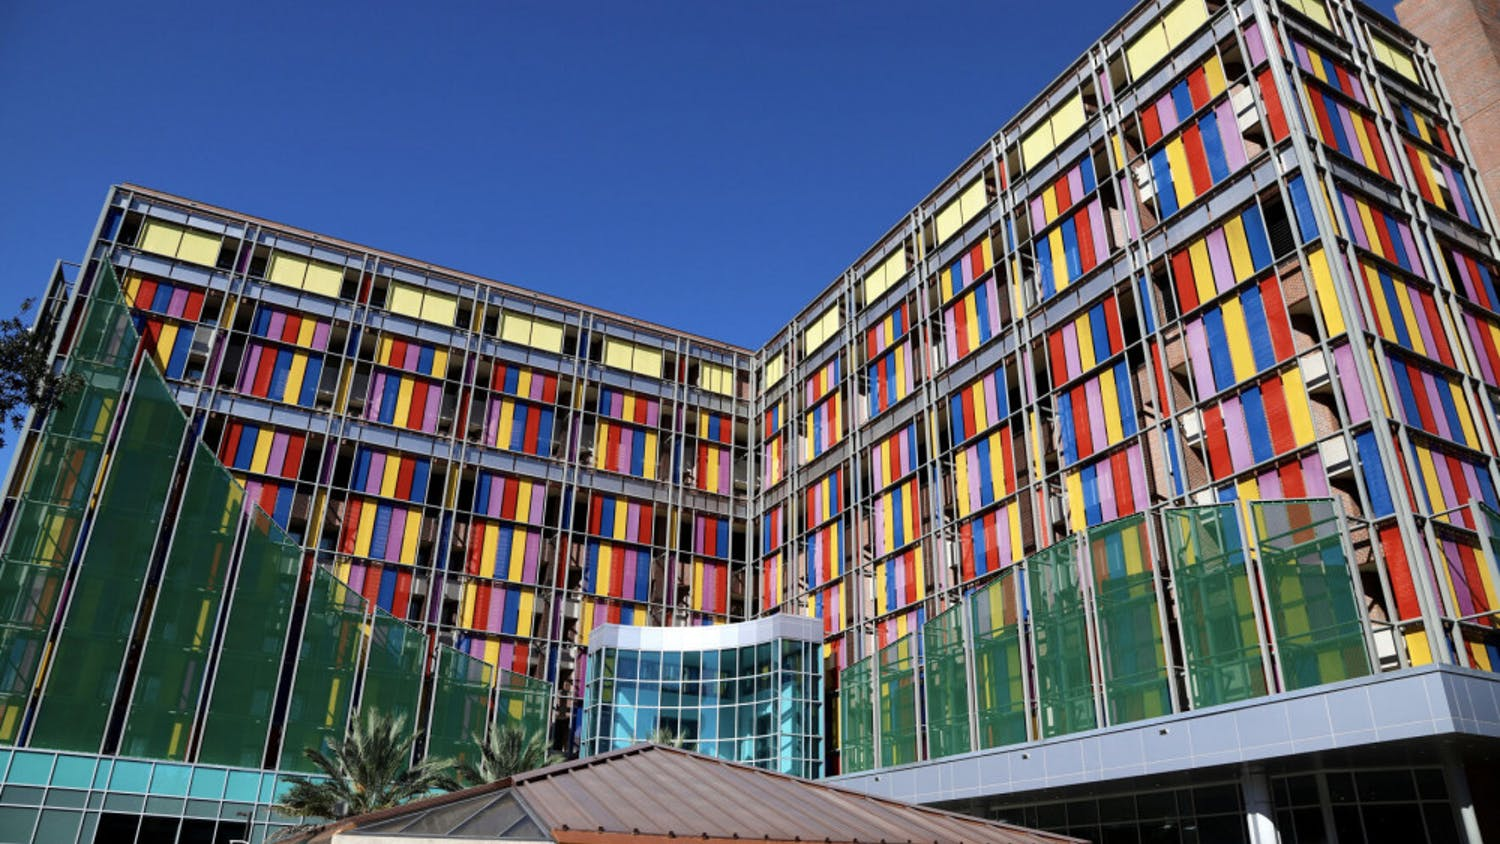 The multi-colored glass of the UF Health Shands Children's Hospital shines as the sun reflects off the panes on September 25, 2020. The pediatric staff provide care in more than 20 specialties including pediatric hematology-oncology.